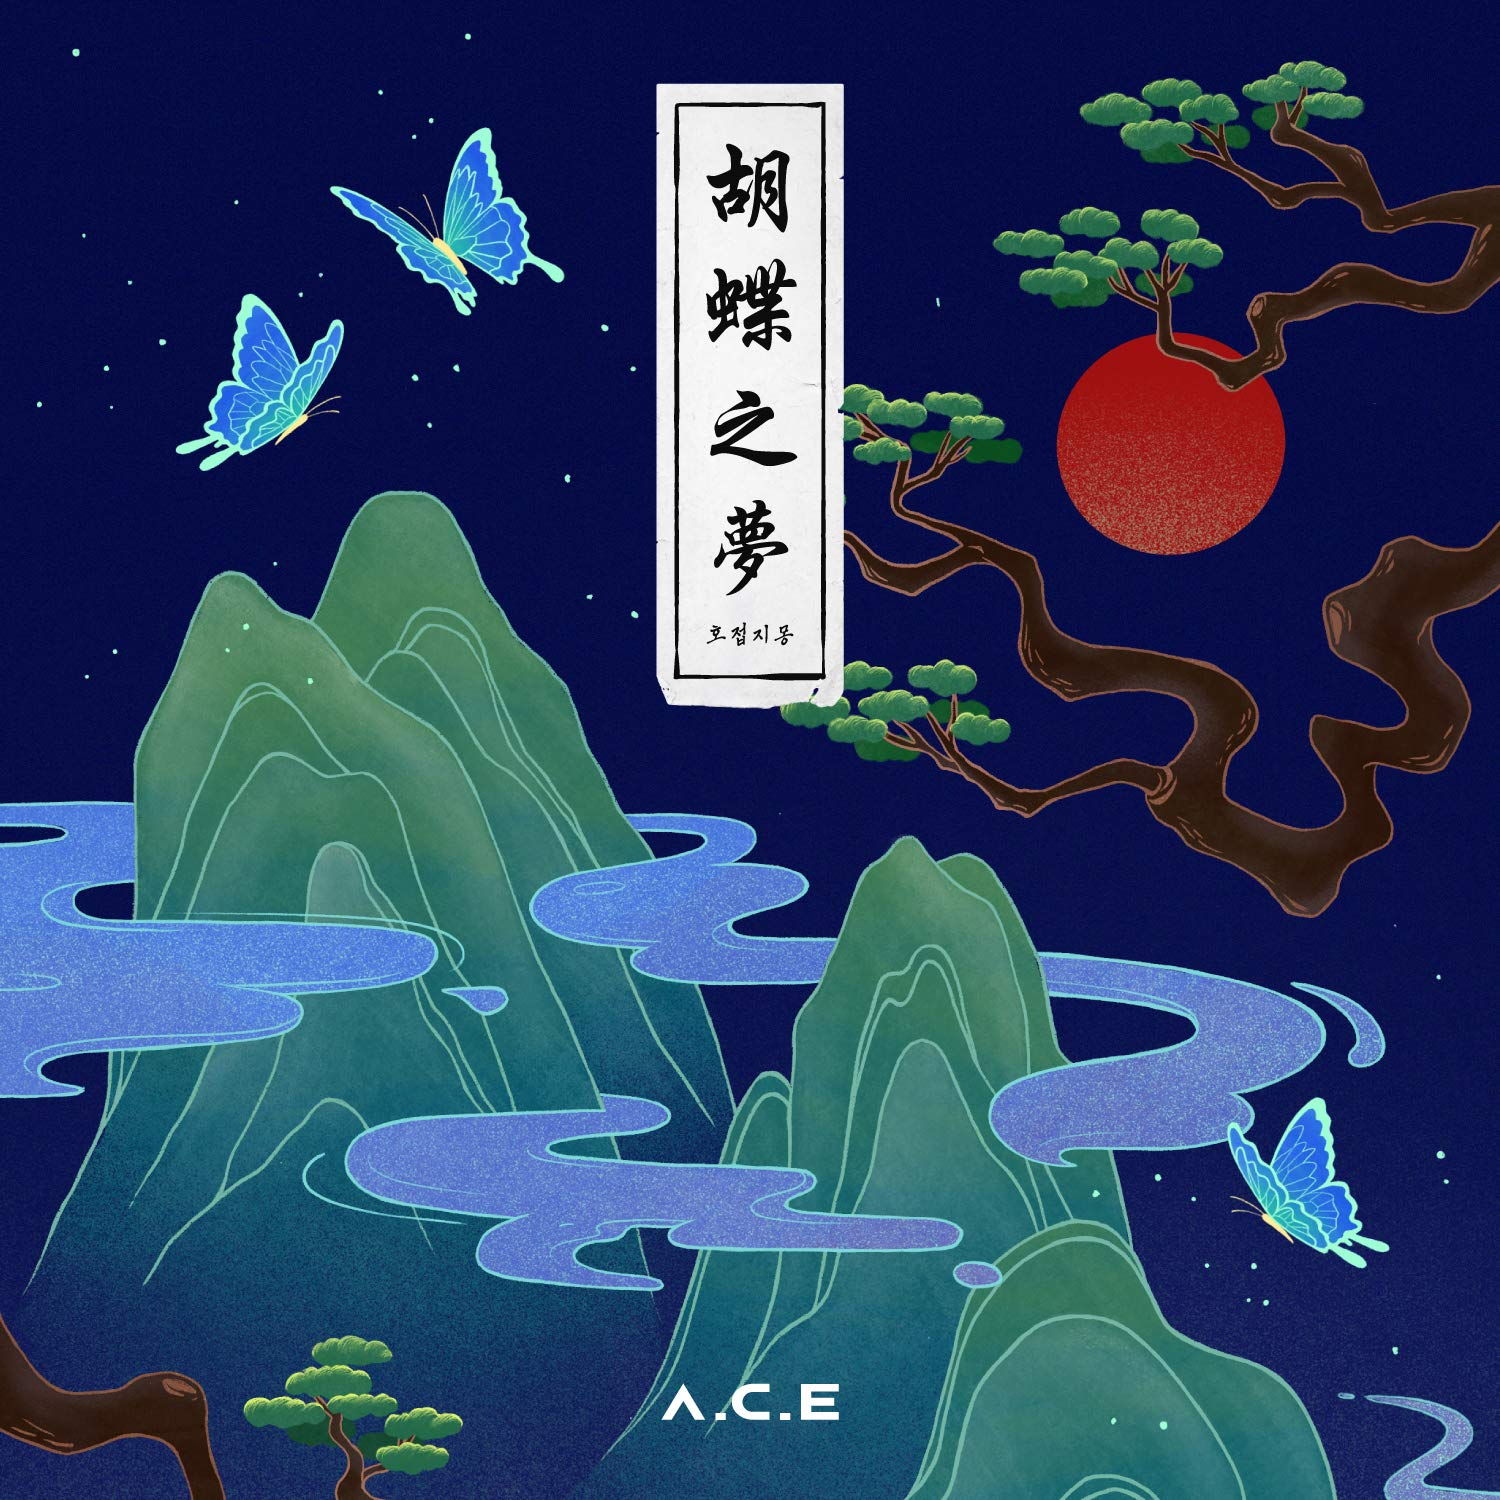 An illustrated album cover depicting two mountains in front of the night sky. Two blue butterflies are in the top left corner and tree branches frame the top right and bottom left corners.